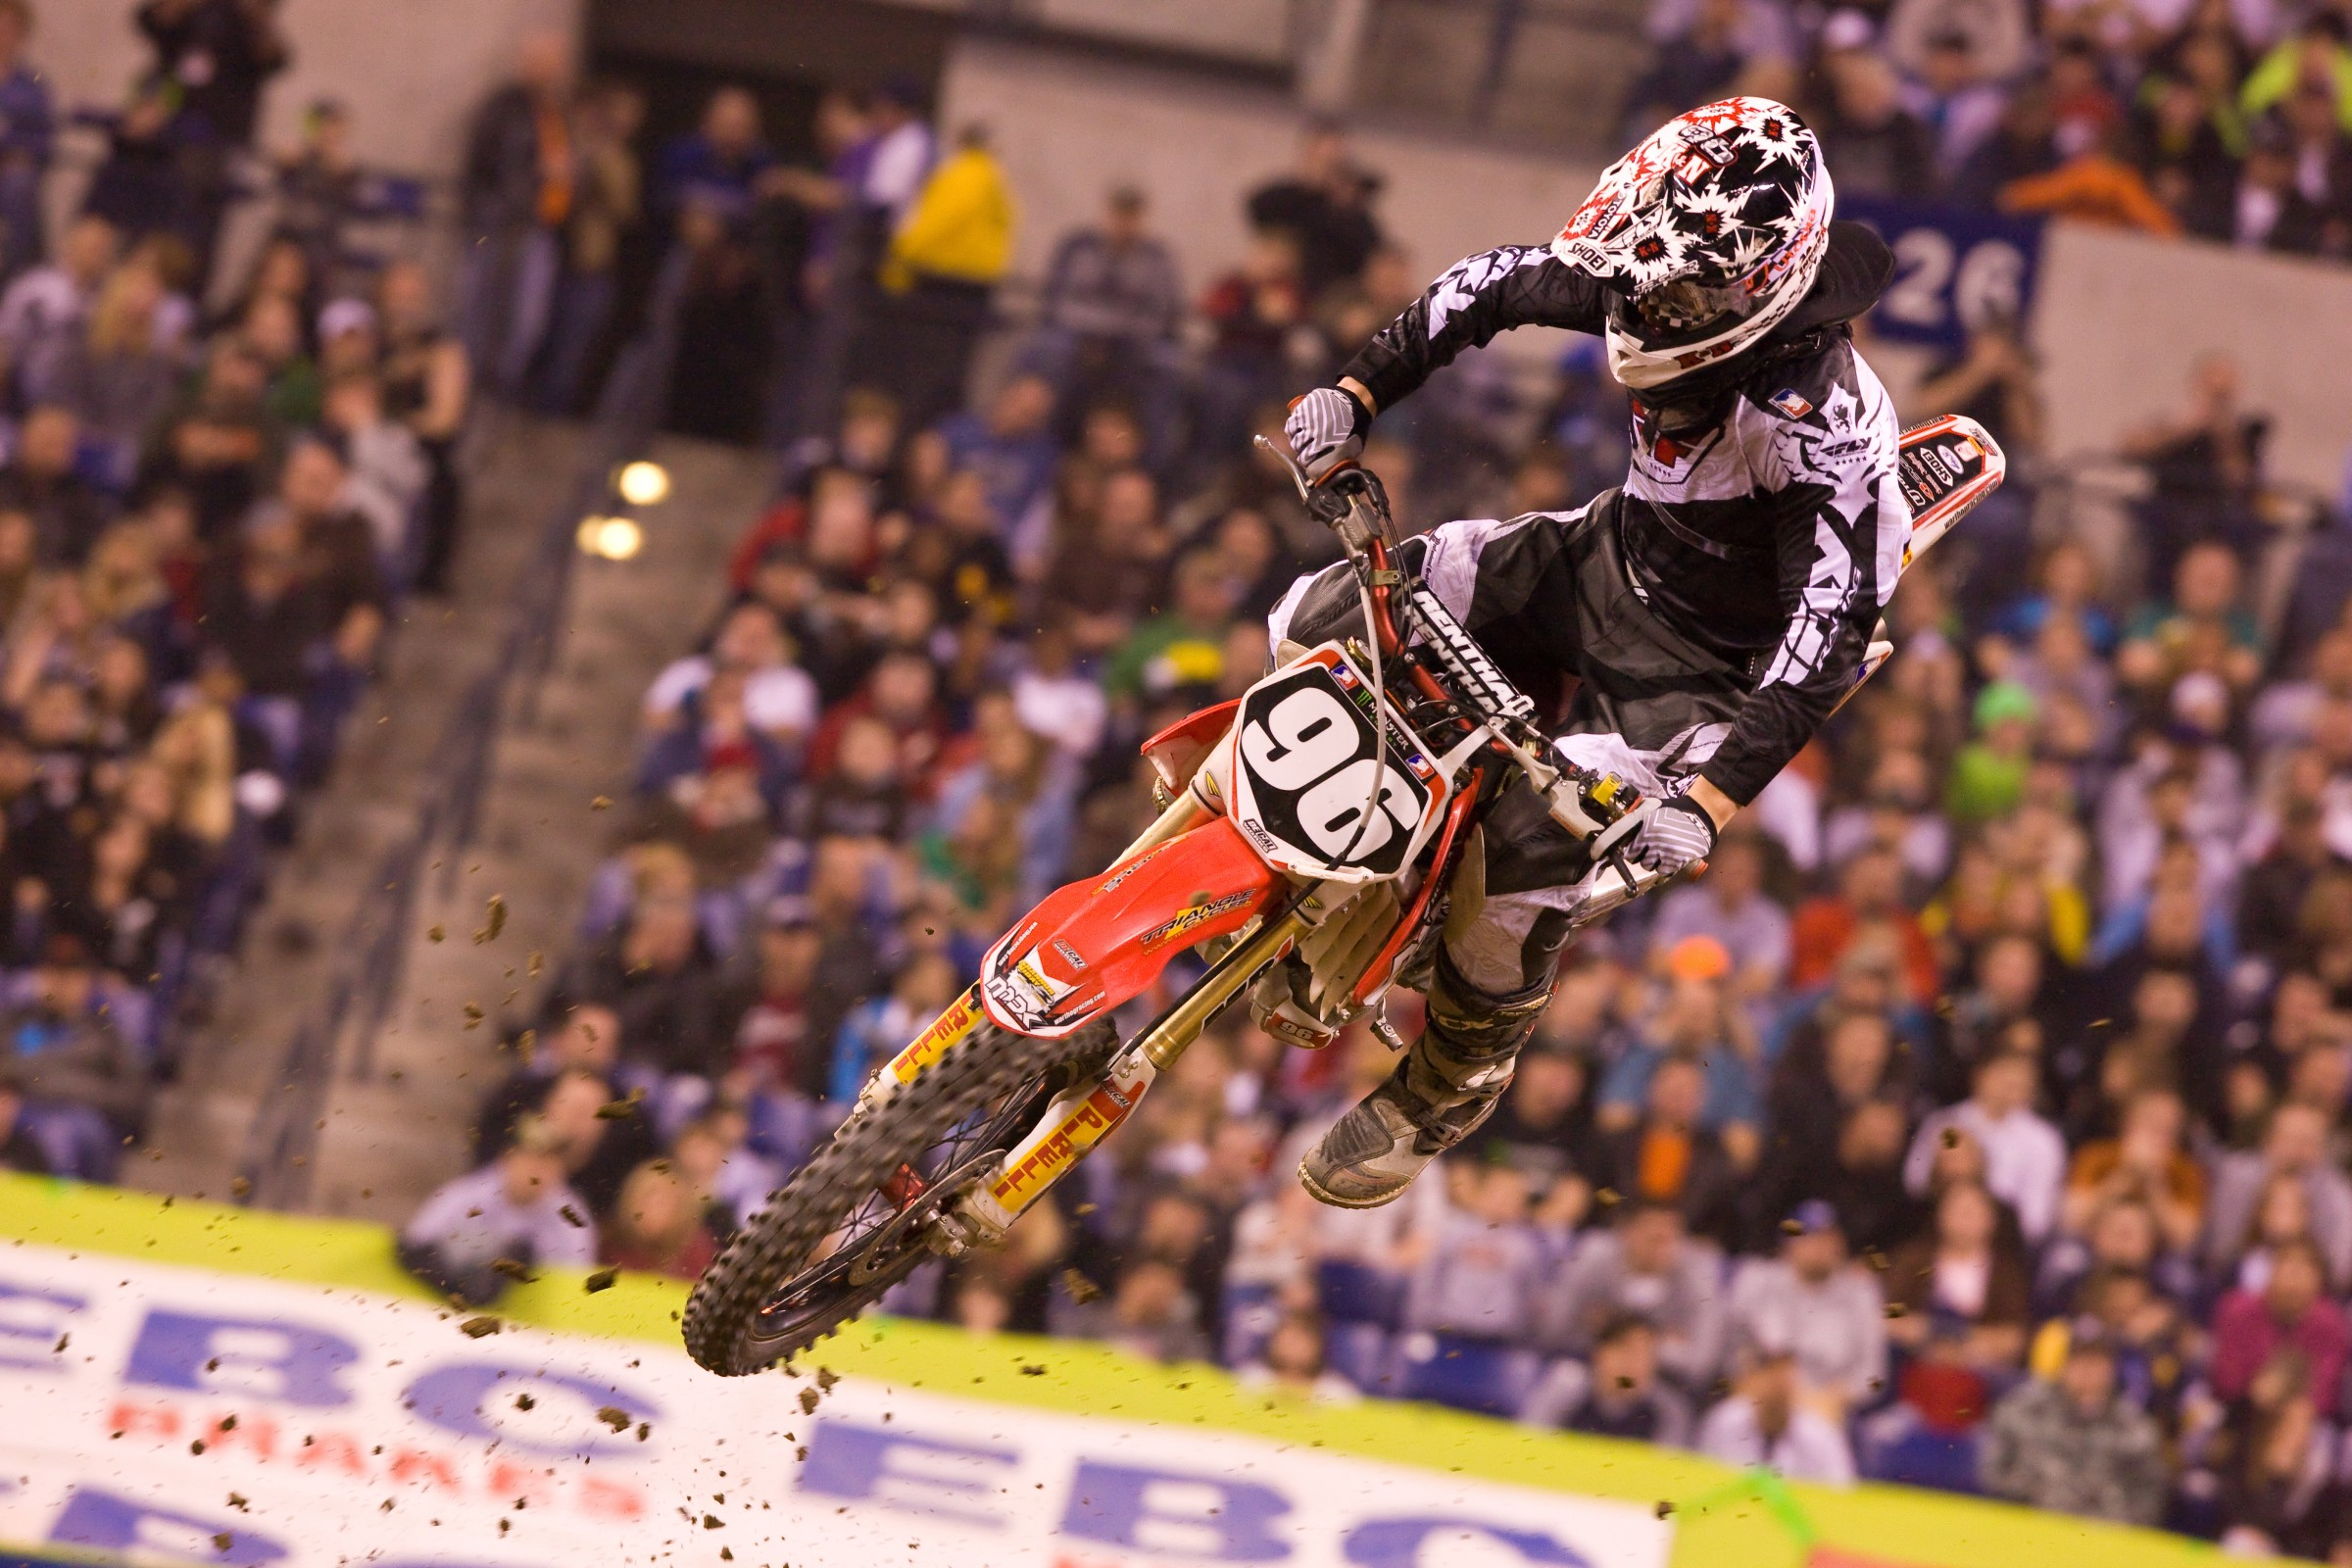 Tyler raced the 2009 250SX East Region, his only full year in Monster Energy Supercross.